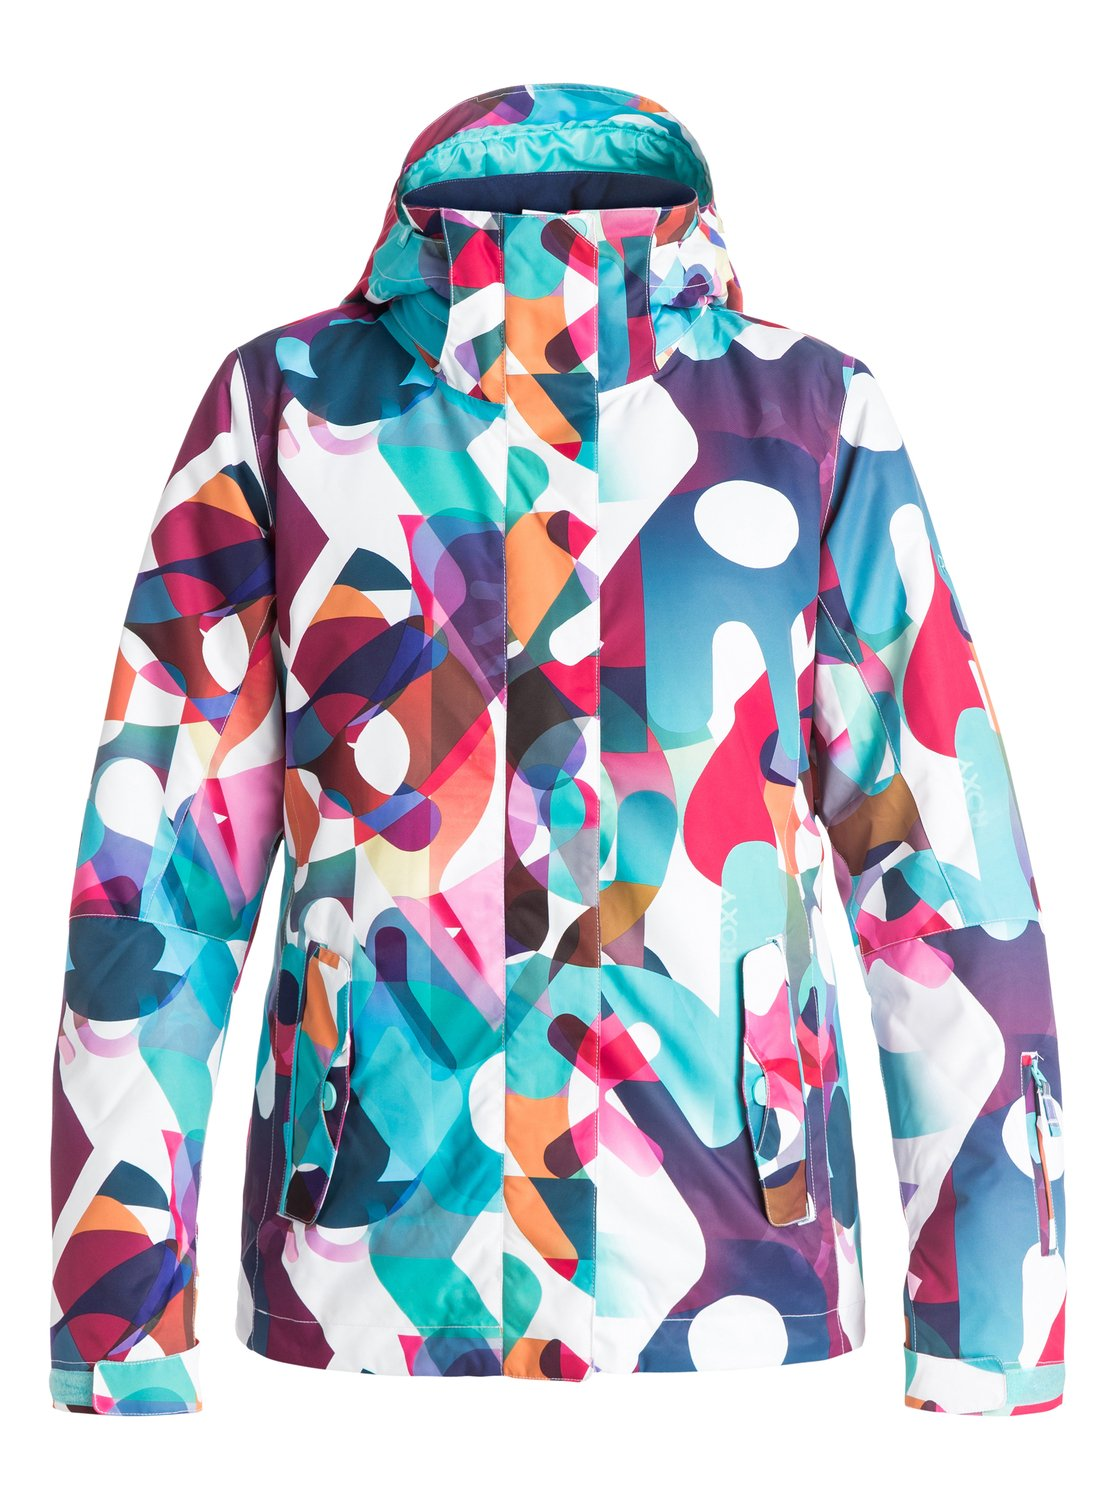 Сноубордическая куртка ROXY JettyStandout on the slopes this winter with the ROXY Jettys bold prints. This snow jacket for womens easy-to-wear style has been crafted with 10K ROXY DryFlight® technology waterproofing for reliable waterproof and breathable protection in a wide range of winter conditions. The regular fit allows space to layer and the Warmflight® level 2 insulation and critically-taped seams will ensure you stay toasty on the inside.<br>